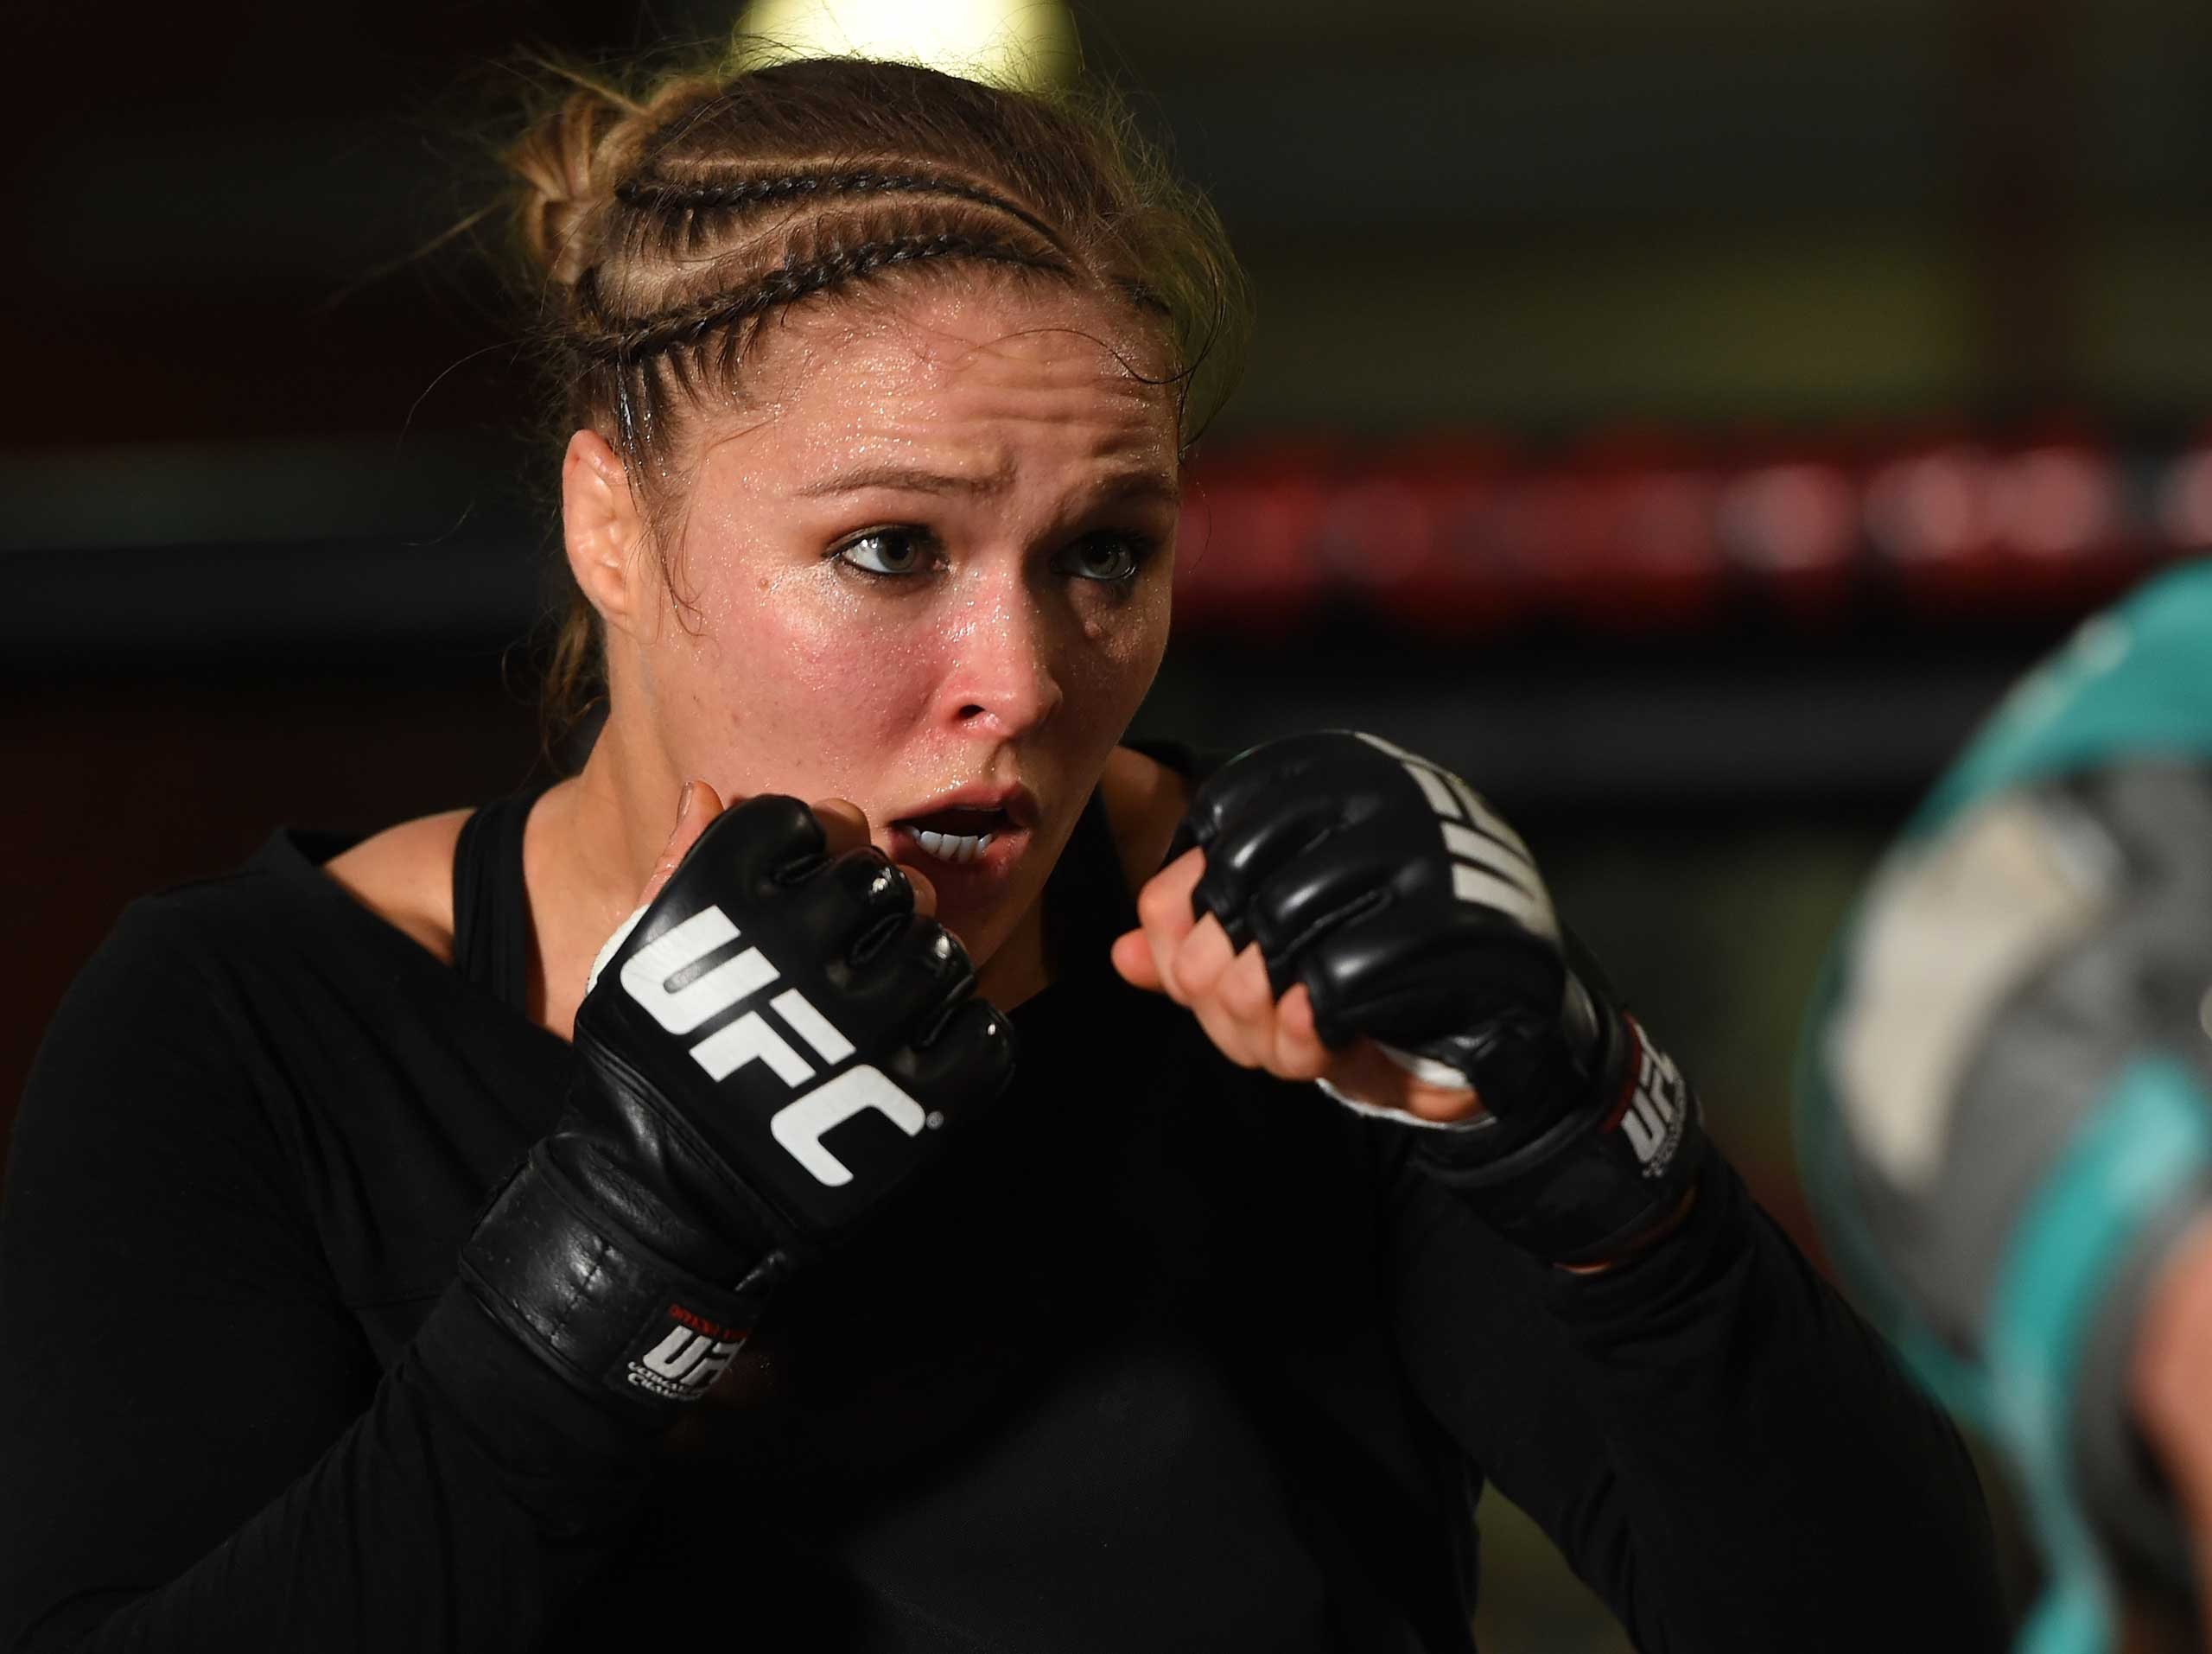 UFC women's bantamweight champion Ronda Rousey holds an open training session for fans and media at the UFC Gym in Torrance, Calif. on Feb. 24, 2015.